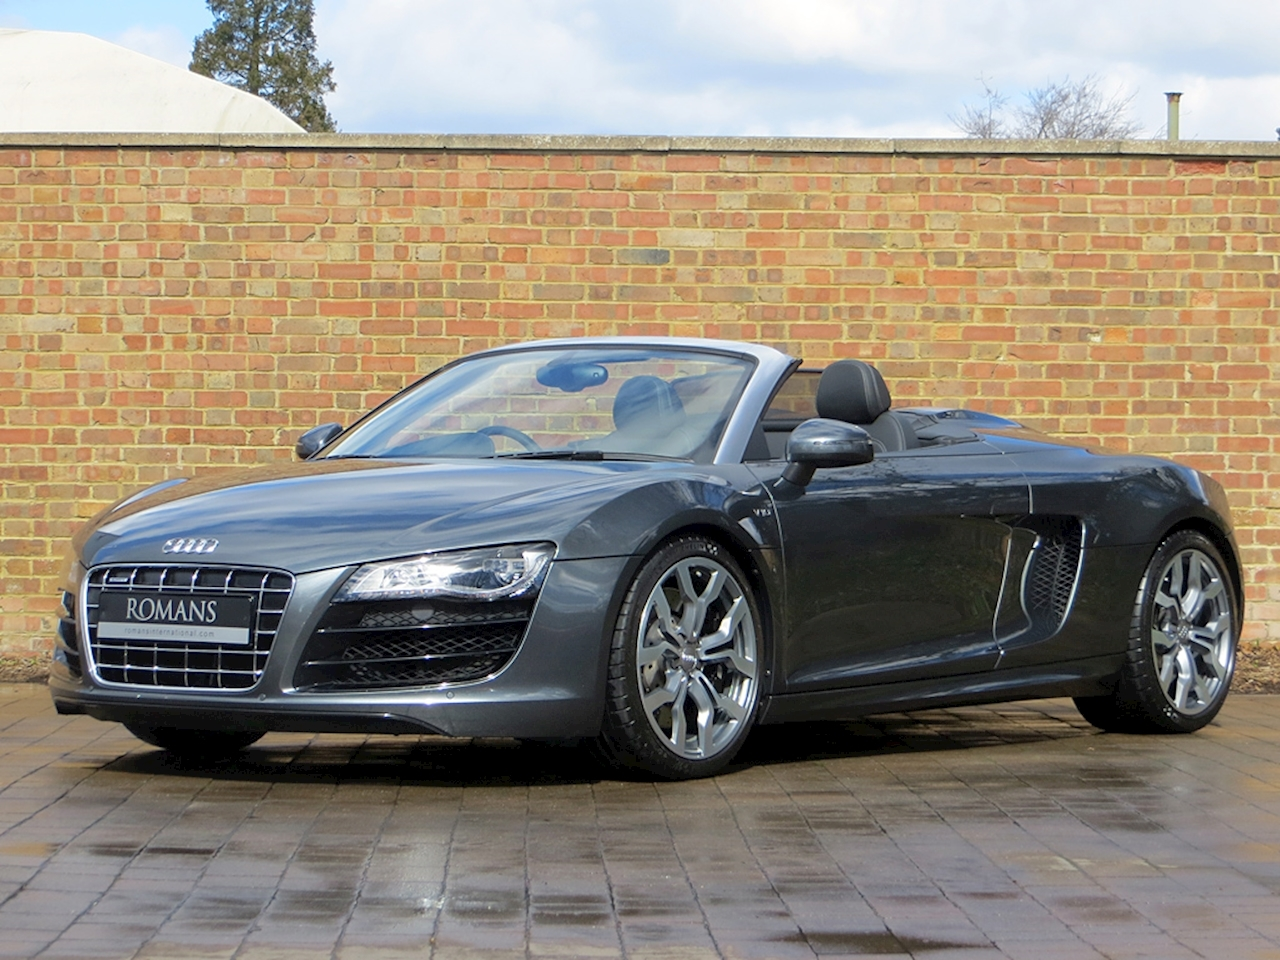 2012 used audi r8 v10 spyder daytona grey. Black Bedroom Furniture Sets. Home Design Ideas